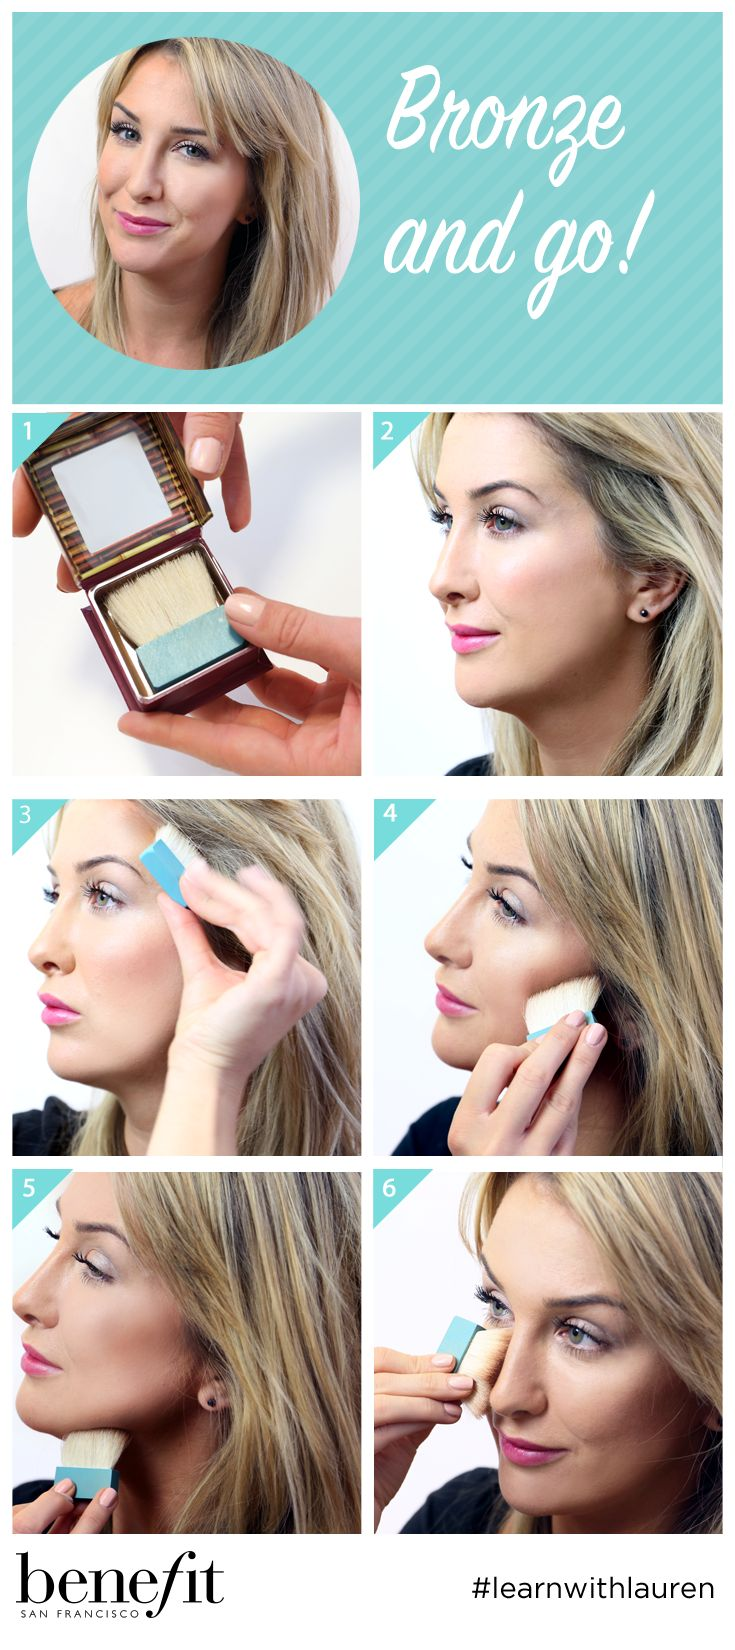 """Contour in all the right places! Make an """"E"""" shape with your hoola bronzer to catch where the sun would naturally tan your face! Then, slim down the nose with a swipe of product! LOVE hoola? You can now get yours personalised exclusively at https://www.benefitcosmetics.co.uk/product/view/personalised-hoola?ext_id=S15_PT_Hoolaxmas_301115"""